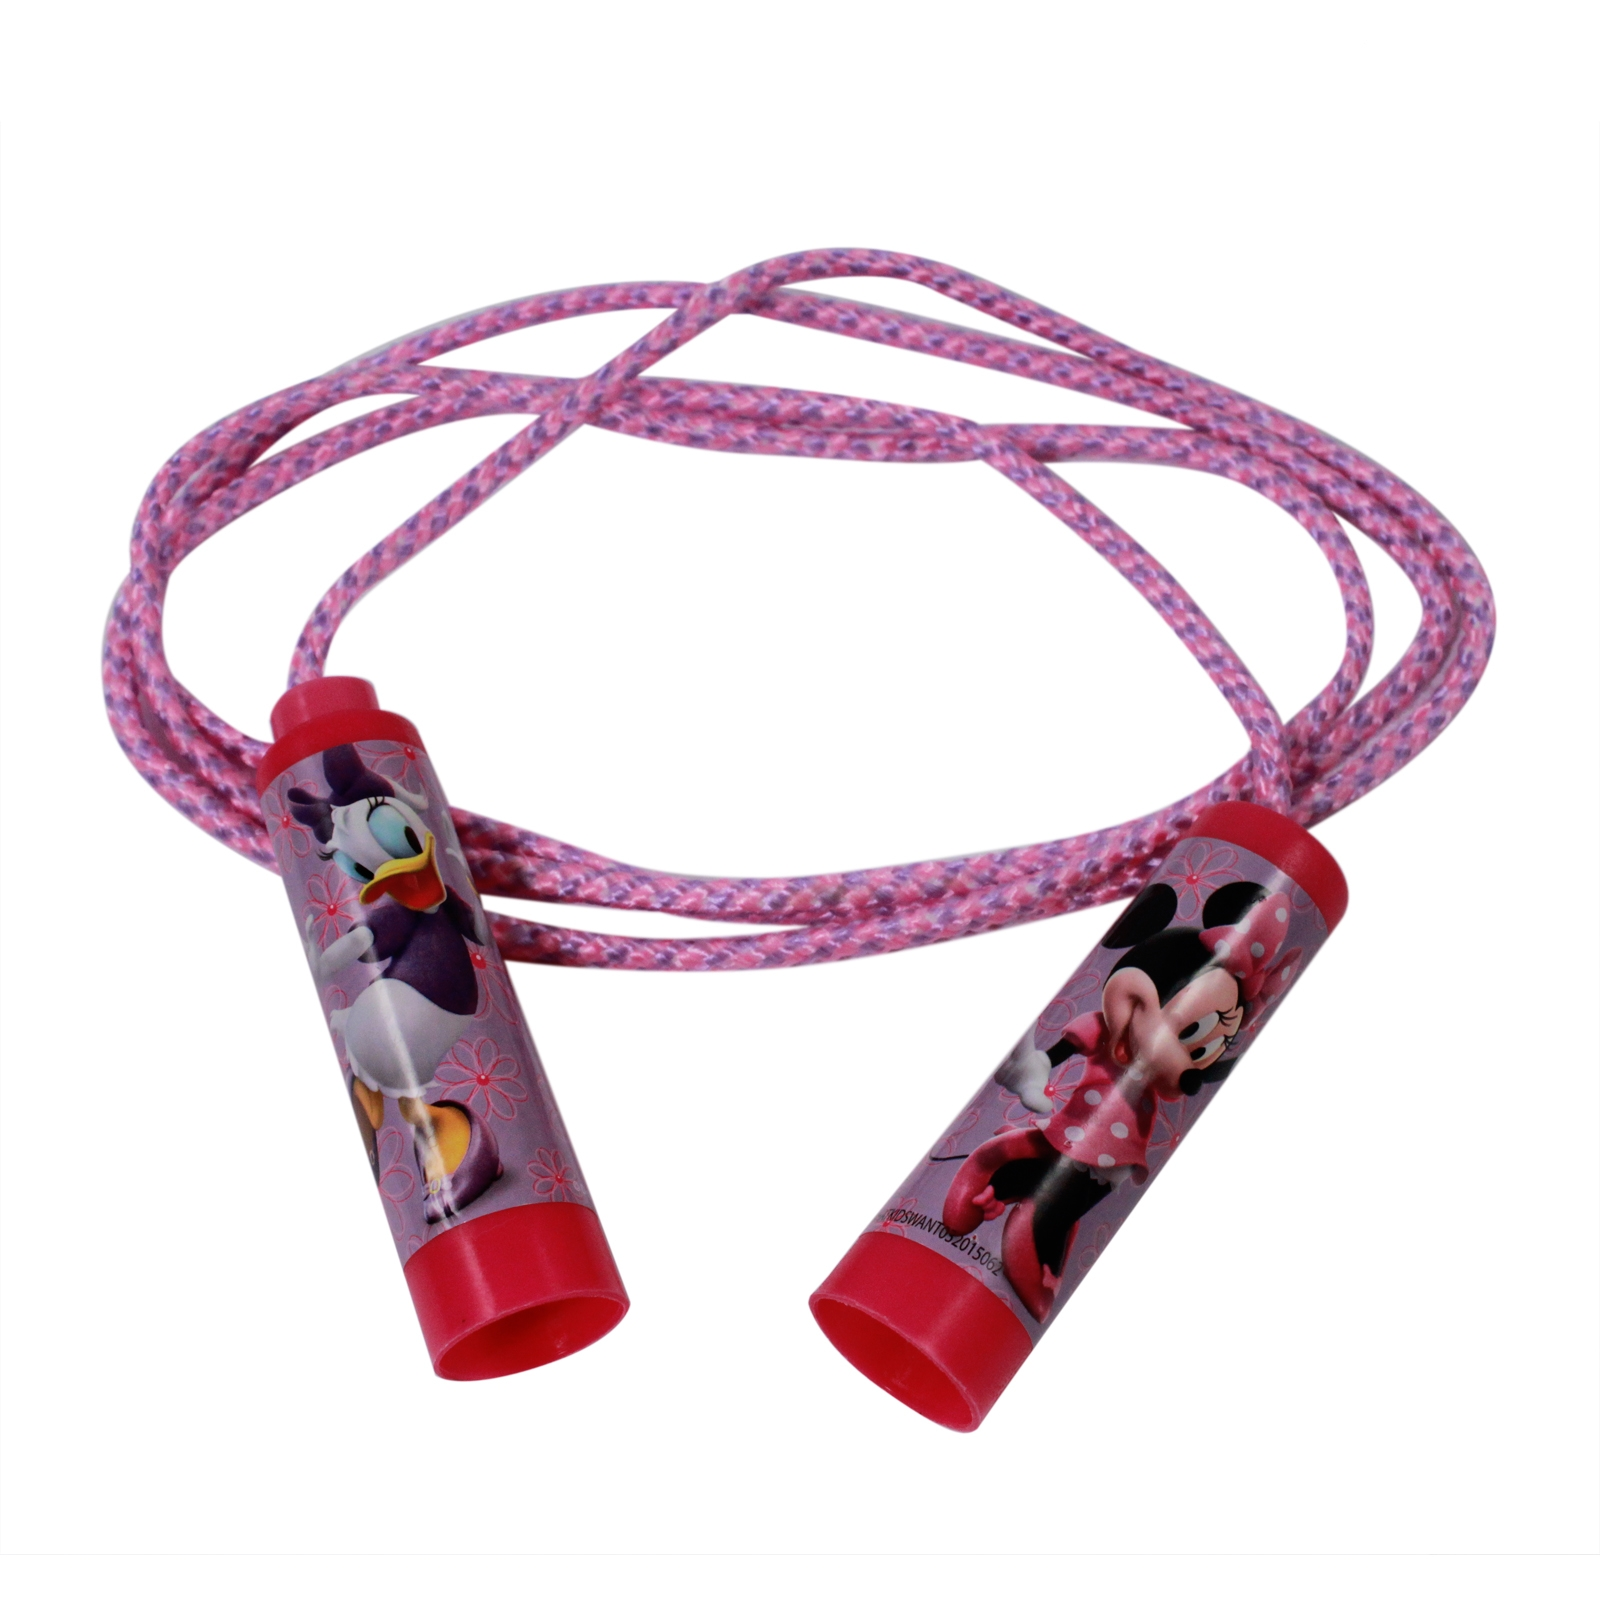 Officially Licensed 7 Feet Long Jump Rope Exercise Toy